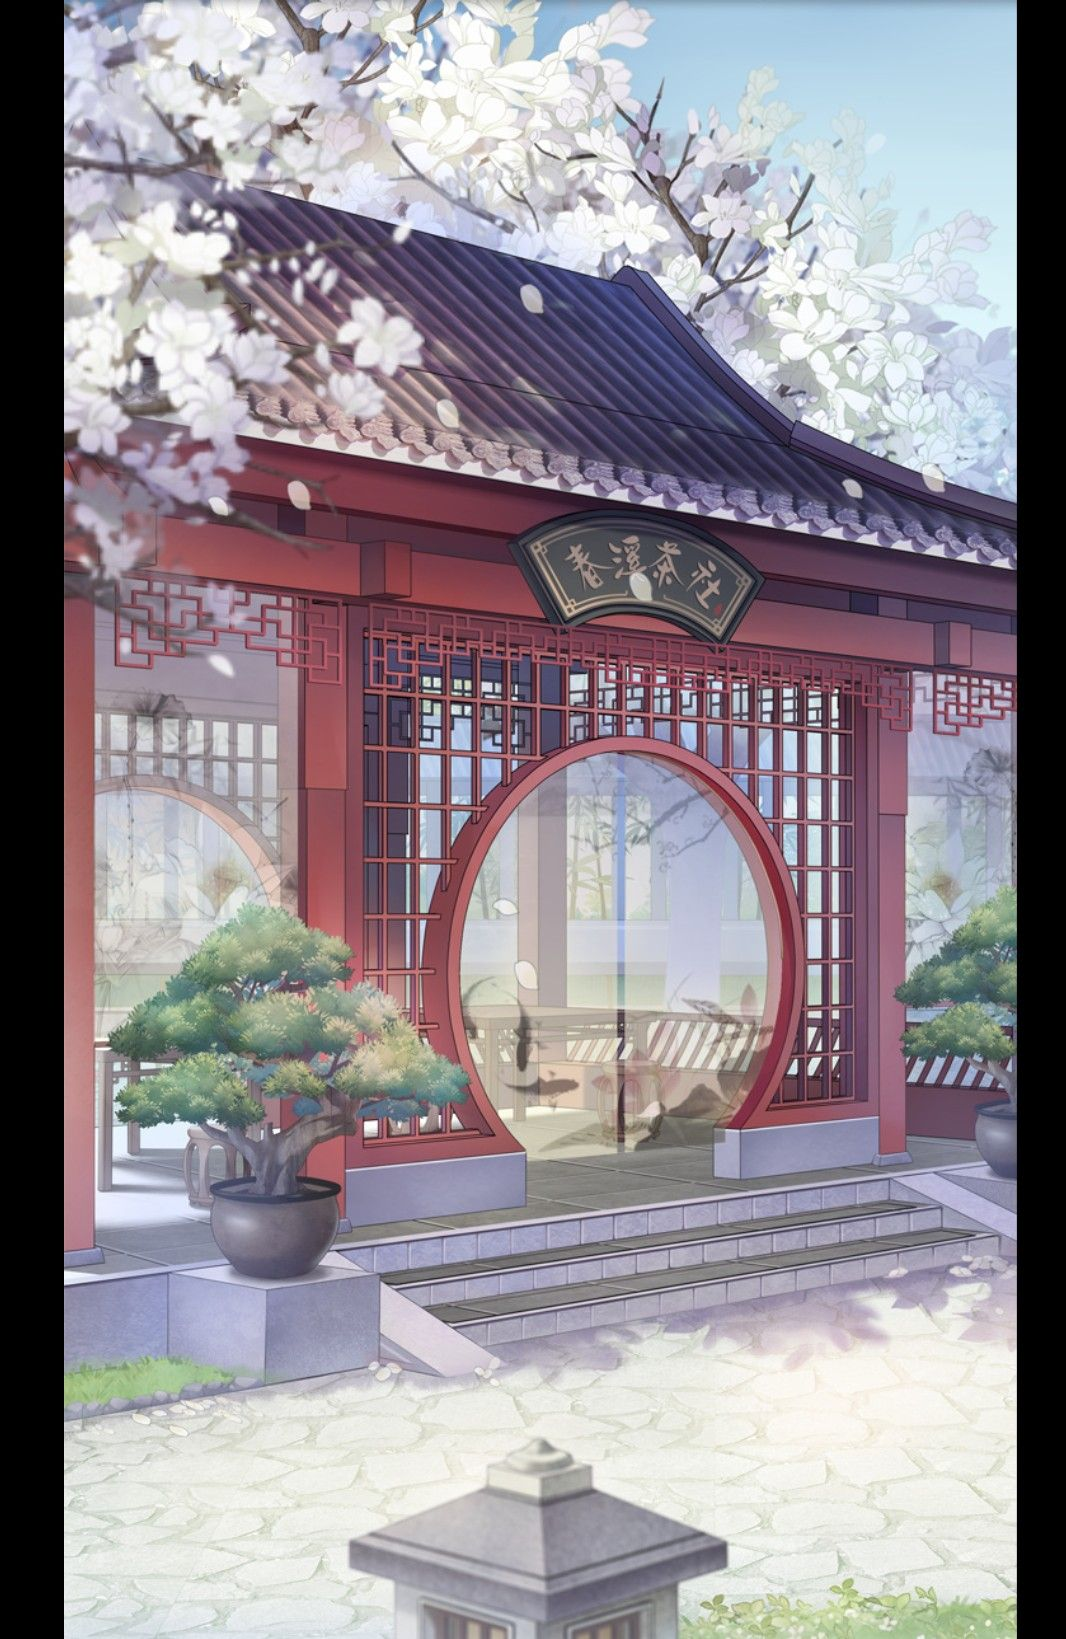 Chinese architecture ancient china art anime girl style traditional also pin by terry giang on qin pinterest rh